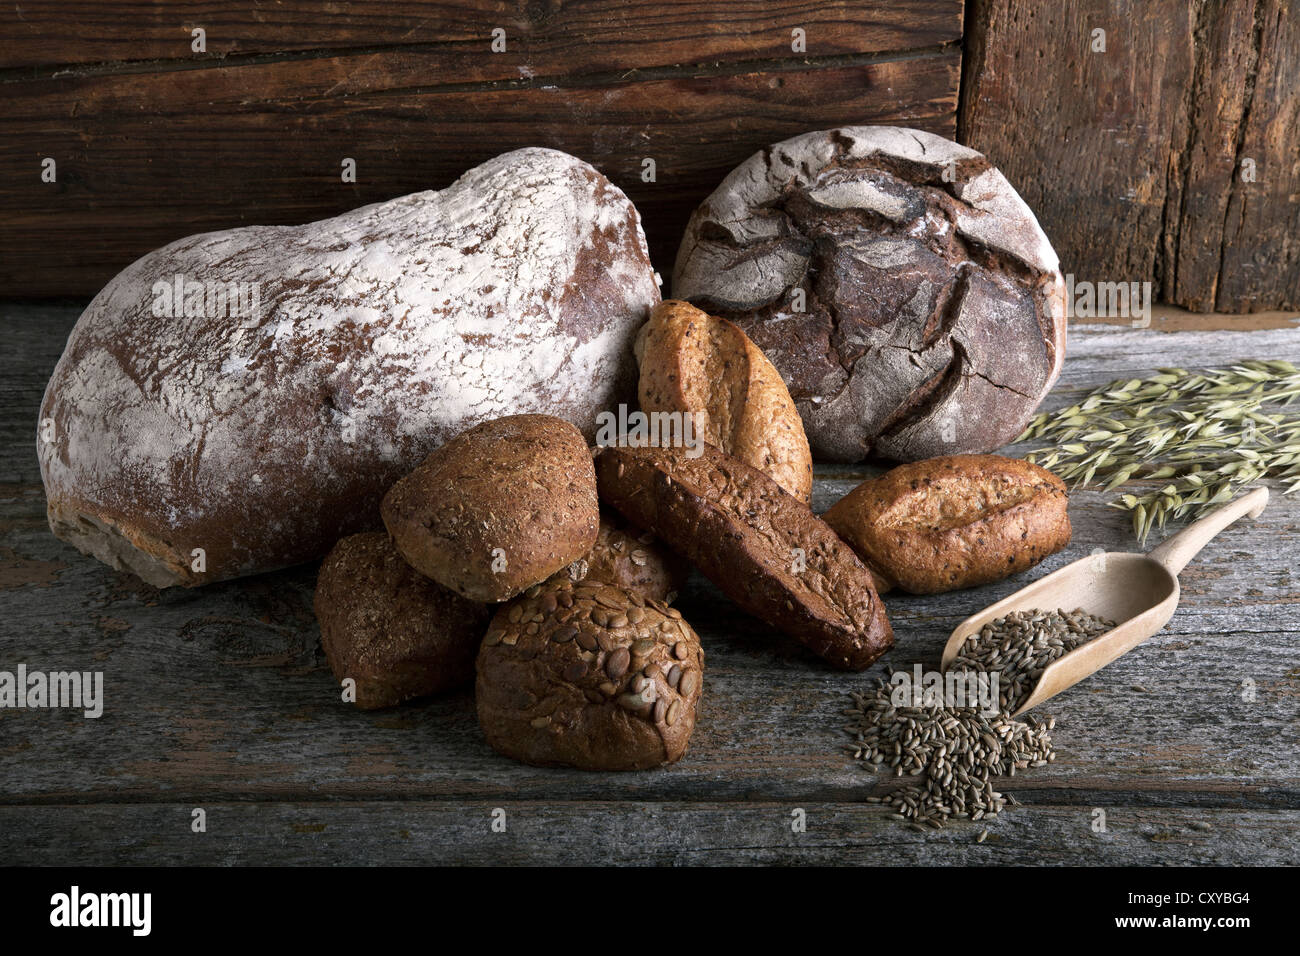 Bread loaves, rolls with rye grain and ears of corn on a rustic wooden surface - Stock Image